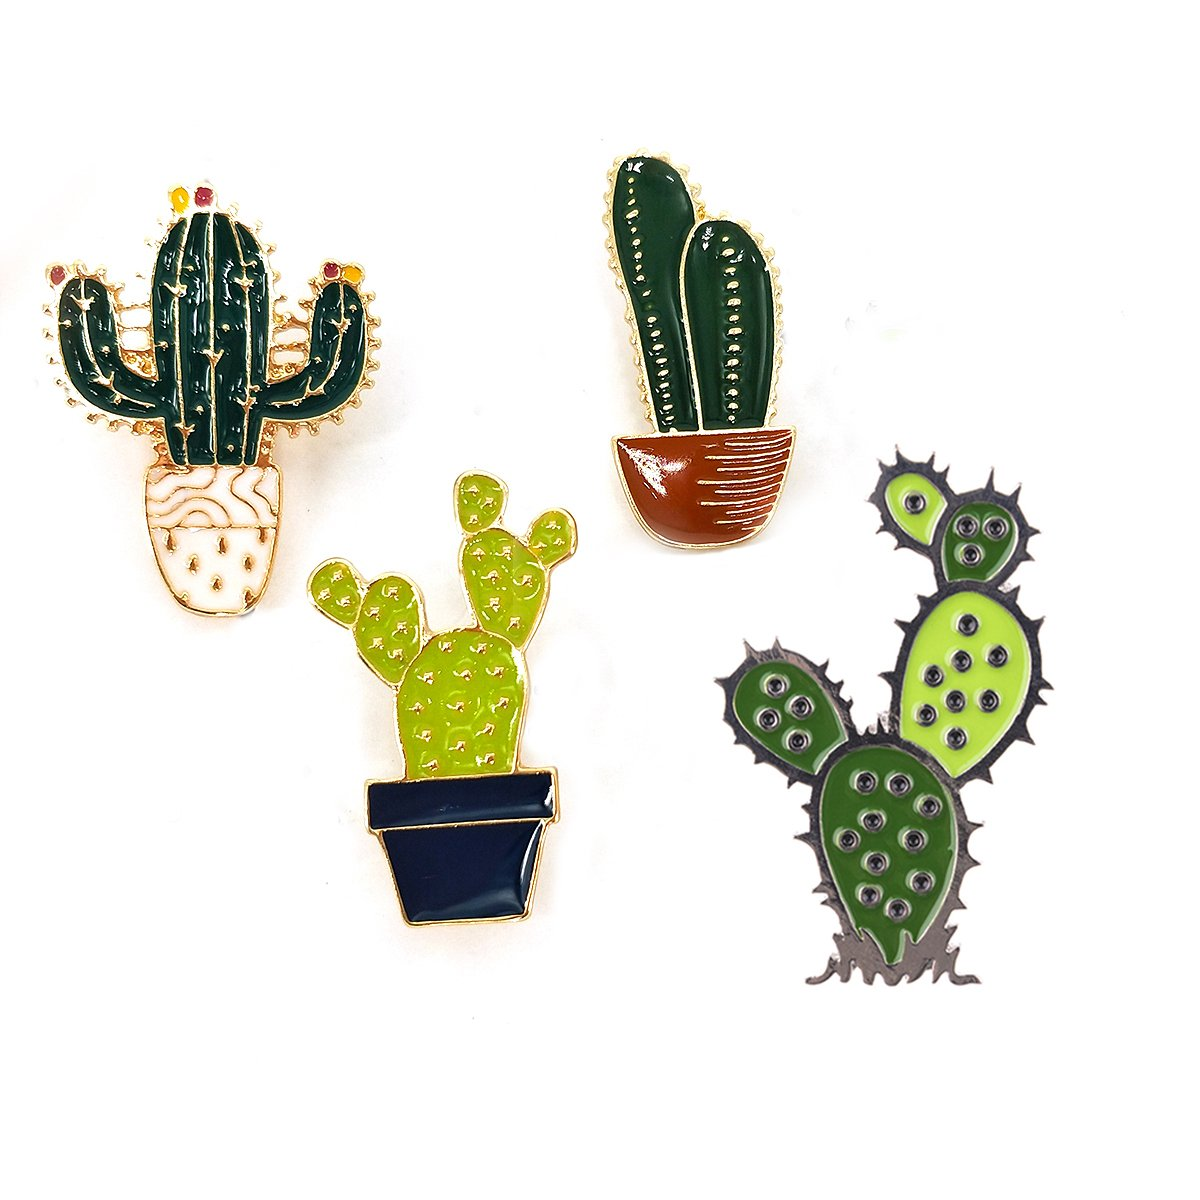 MeliMe Enamel Brooch Pin Floral Cactus Brooches Lapel Pins Badge for Women Girls Boys Jean Bag Clothes Decoration (Style 7)